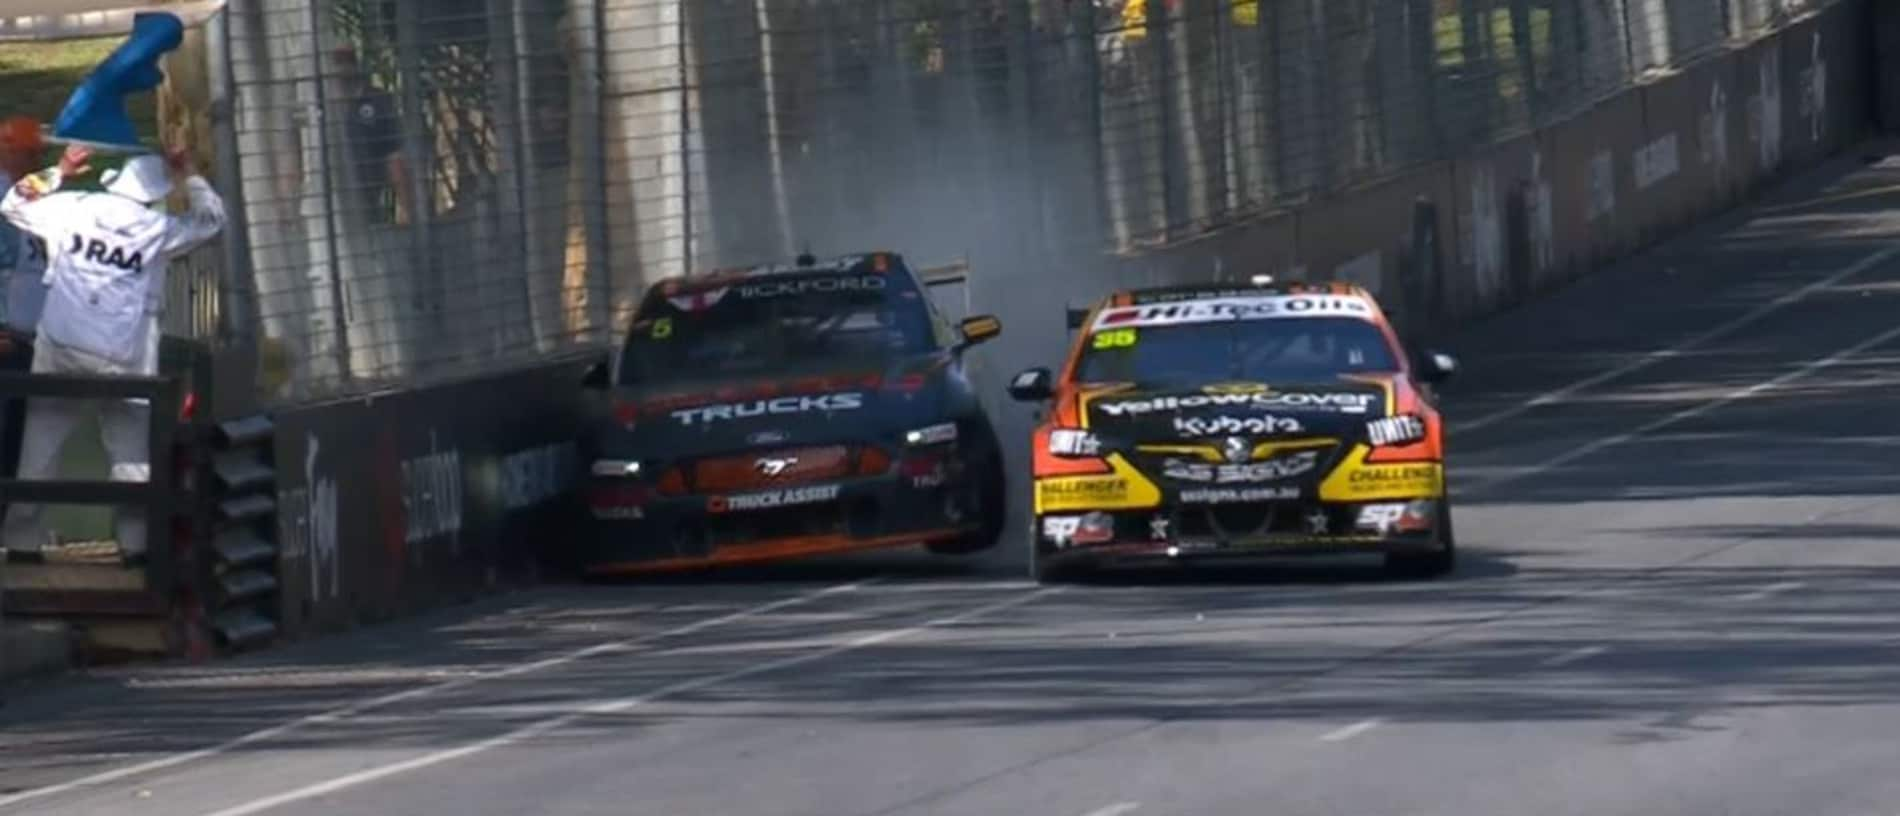 Lee Holdsworth and Garry Jacobson collide in Practice 1.